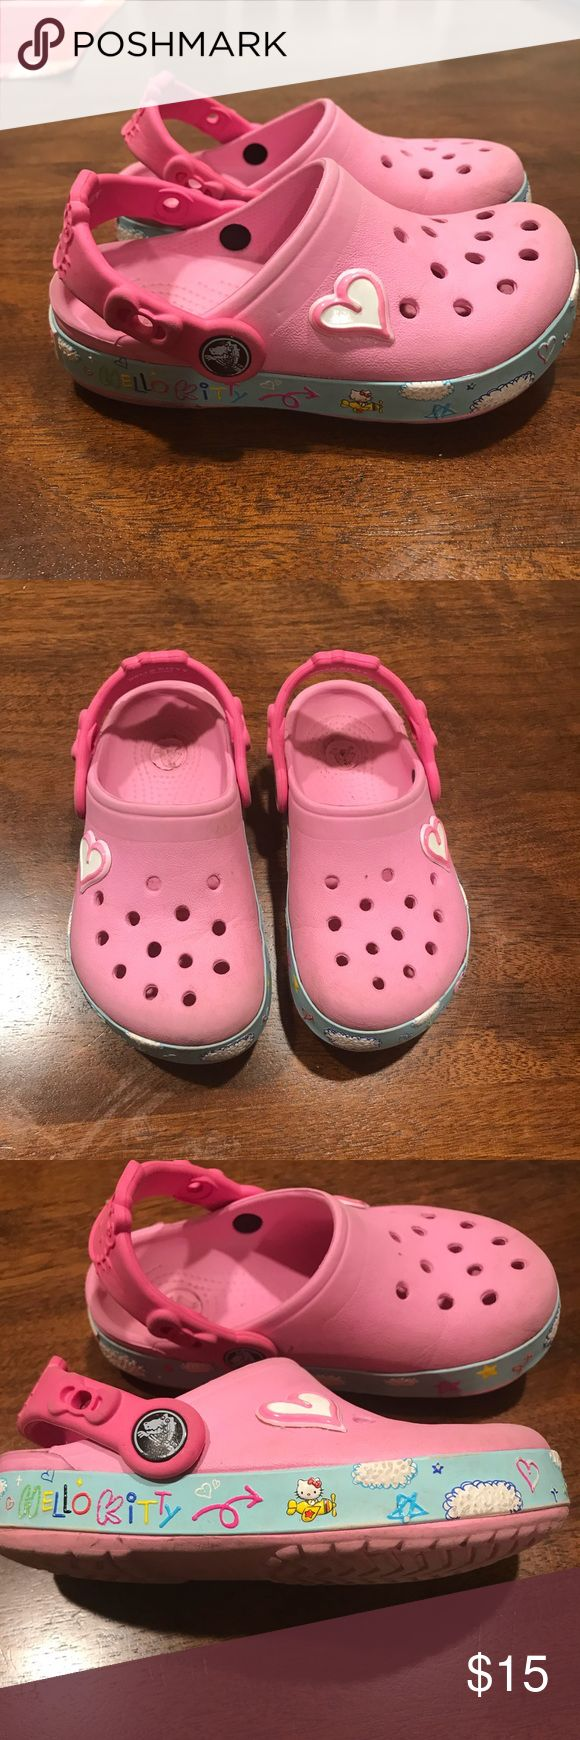 Little girls Hello Kitty Crocs The cutest Hello Kitty Crocs! Great used condition. CROCS Shoes Sandals & Flip Flops